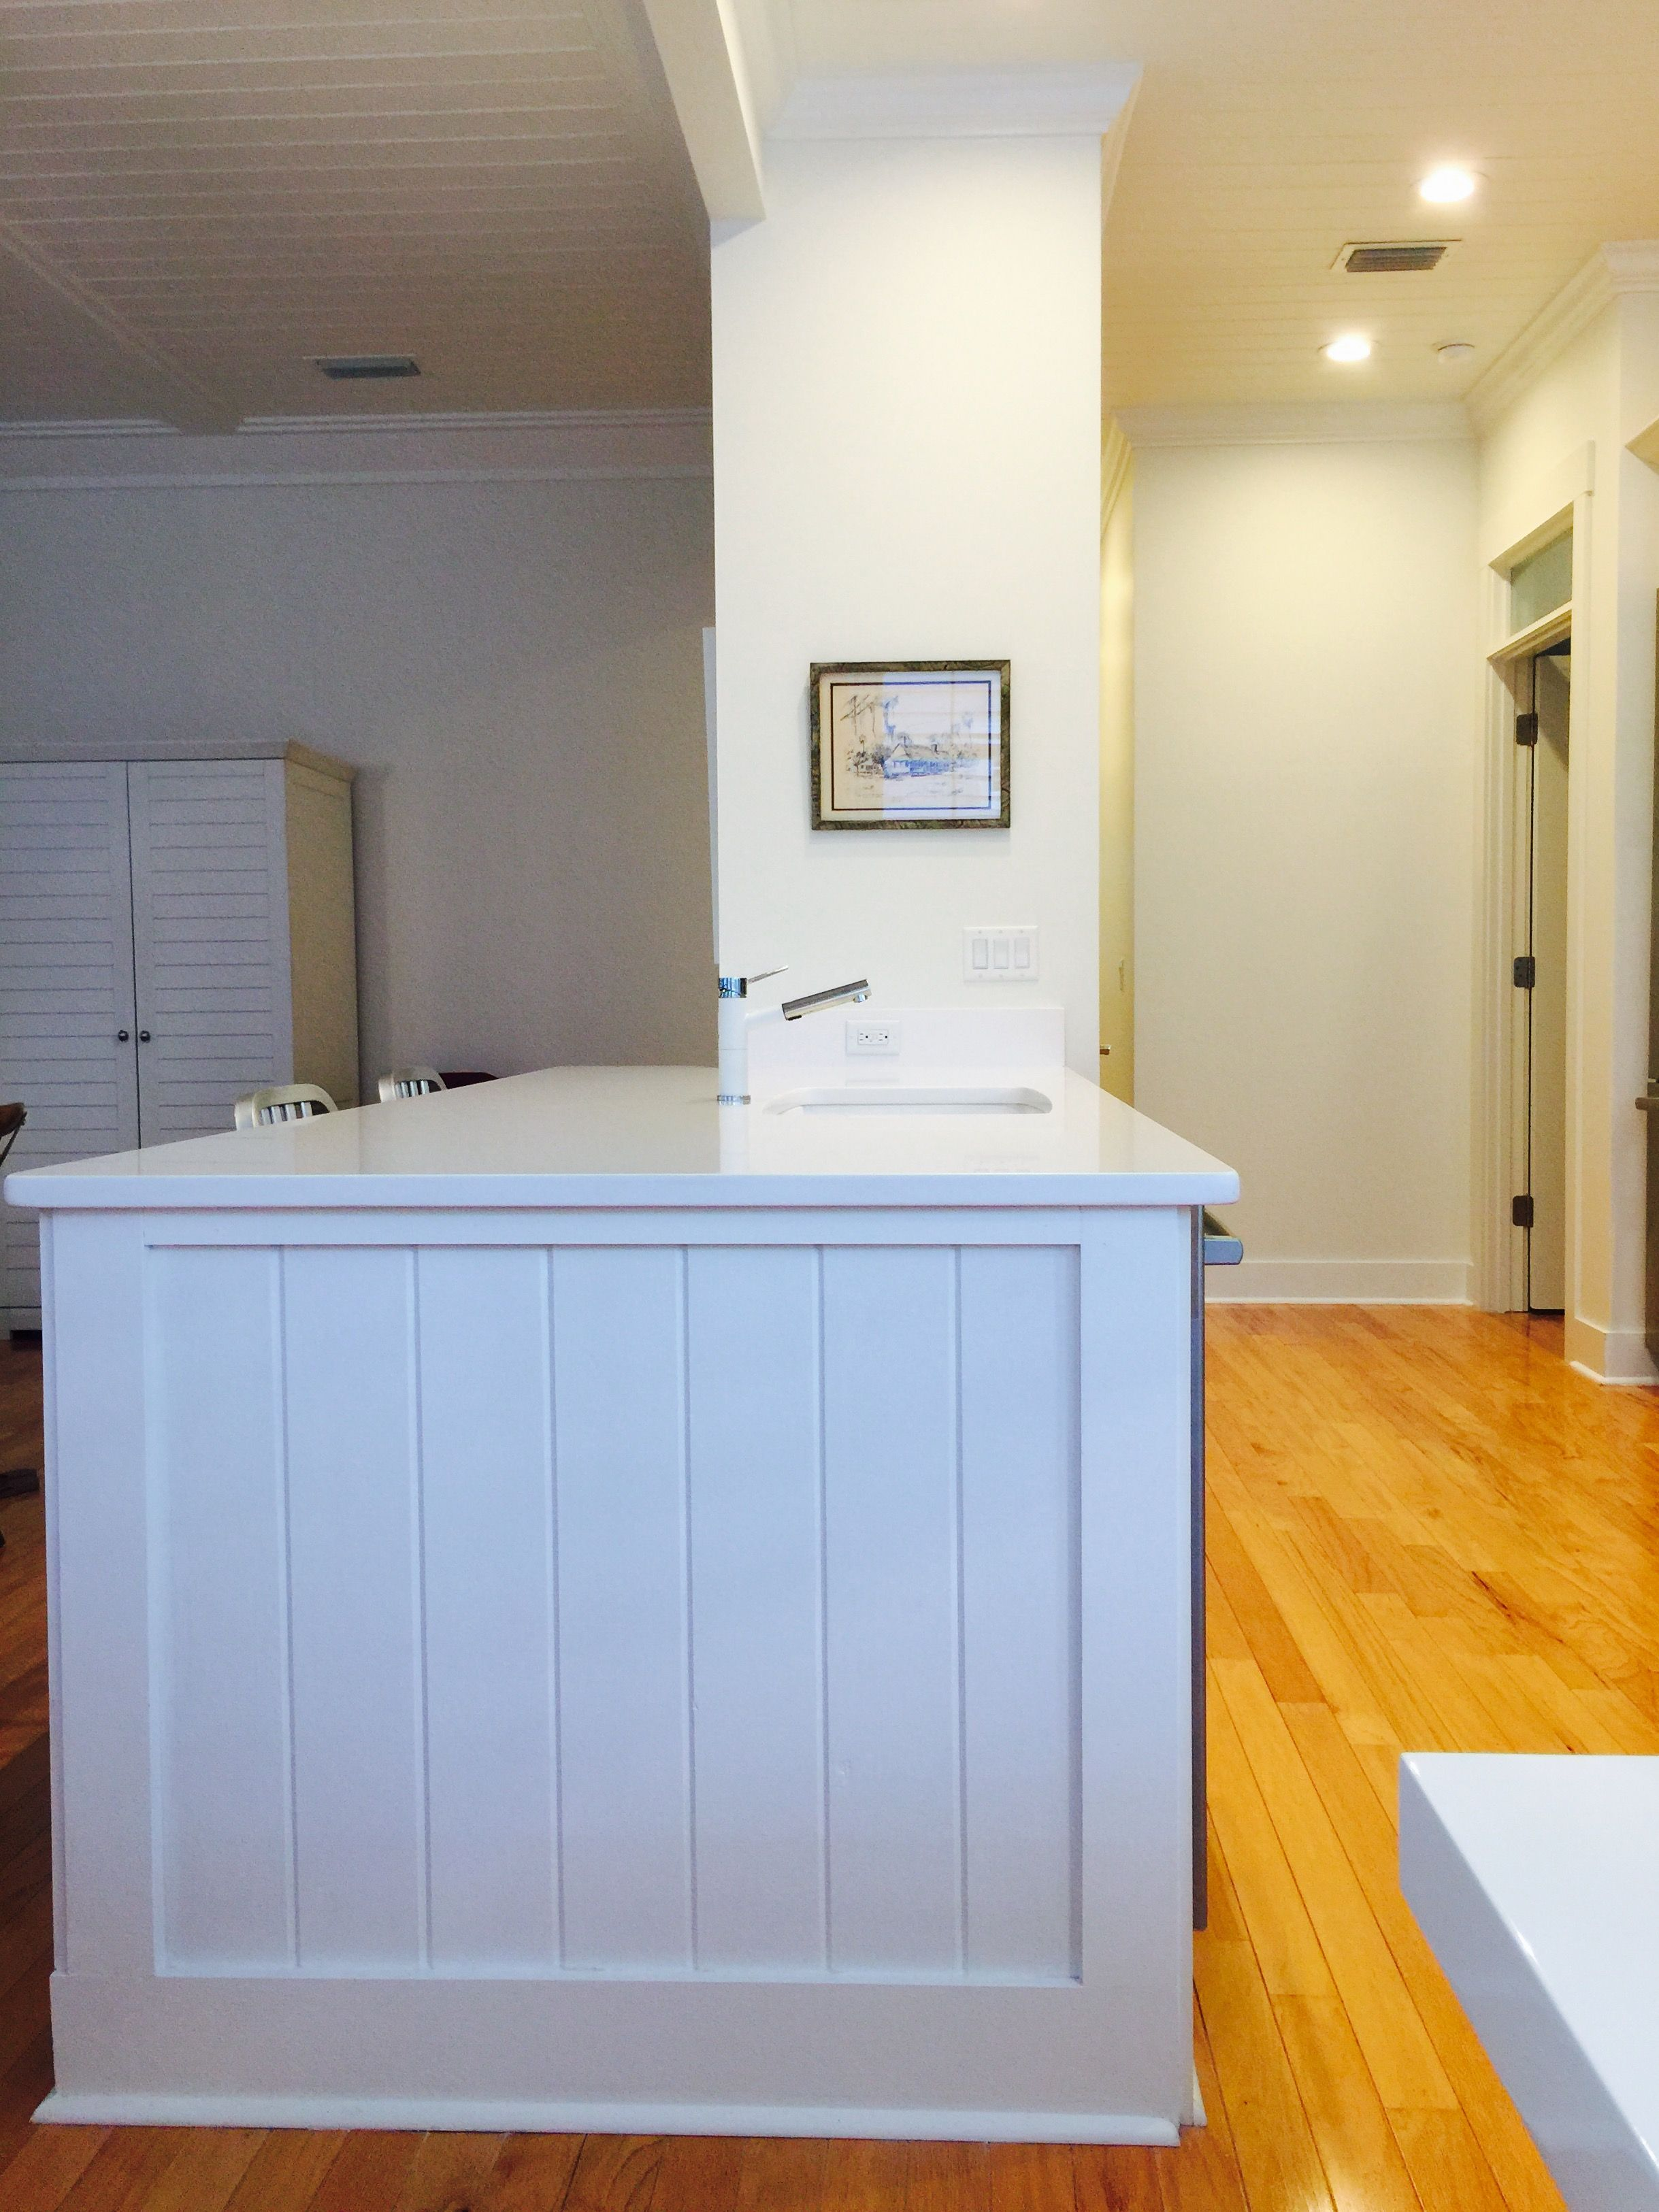 Peninsula with white granite sink and sketch of Cross Creek on wall ...